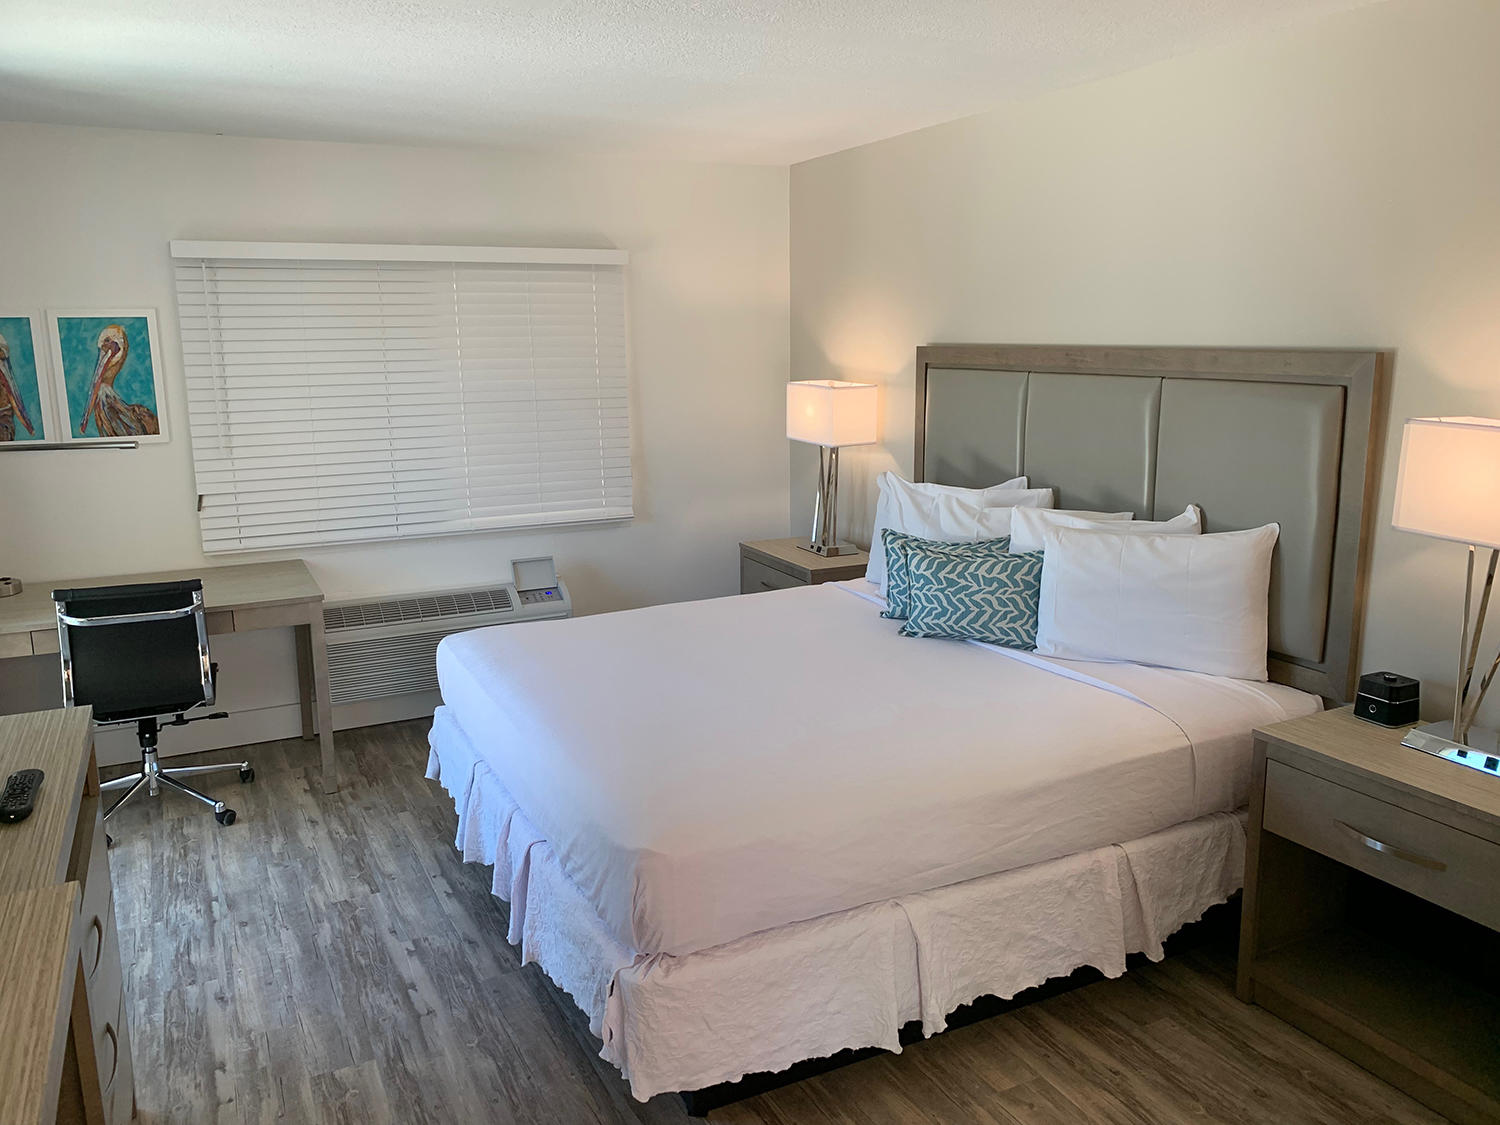 Bayview Suite Room with Juliette Balcony and King Bed